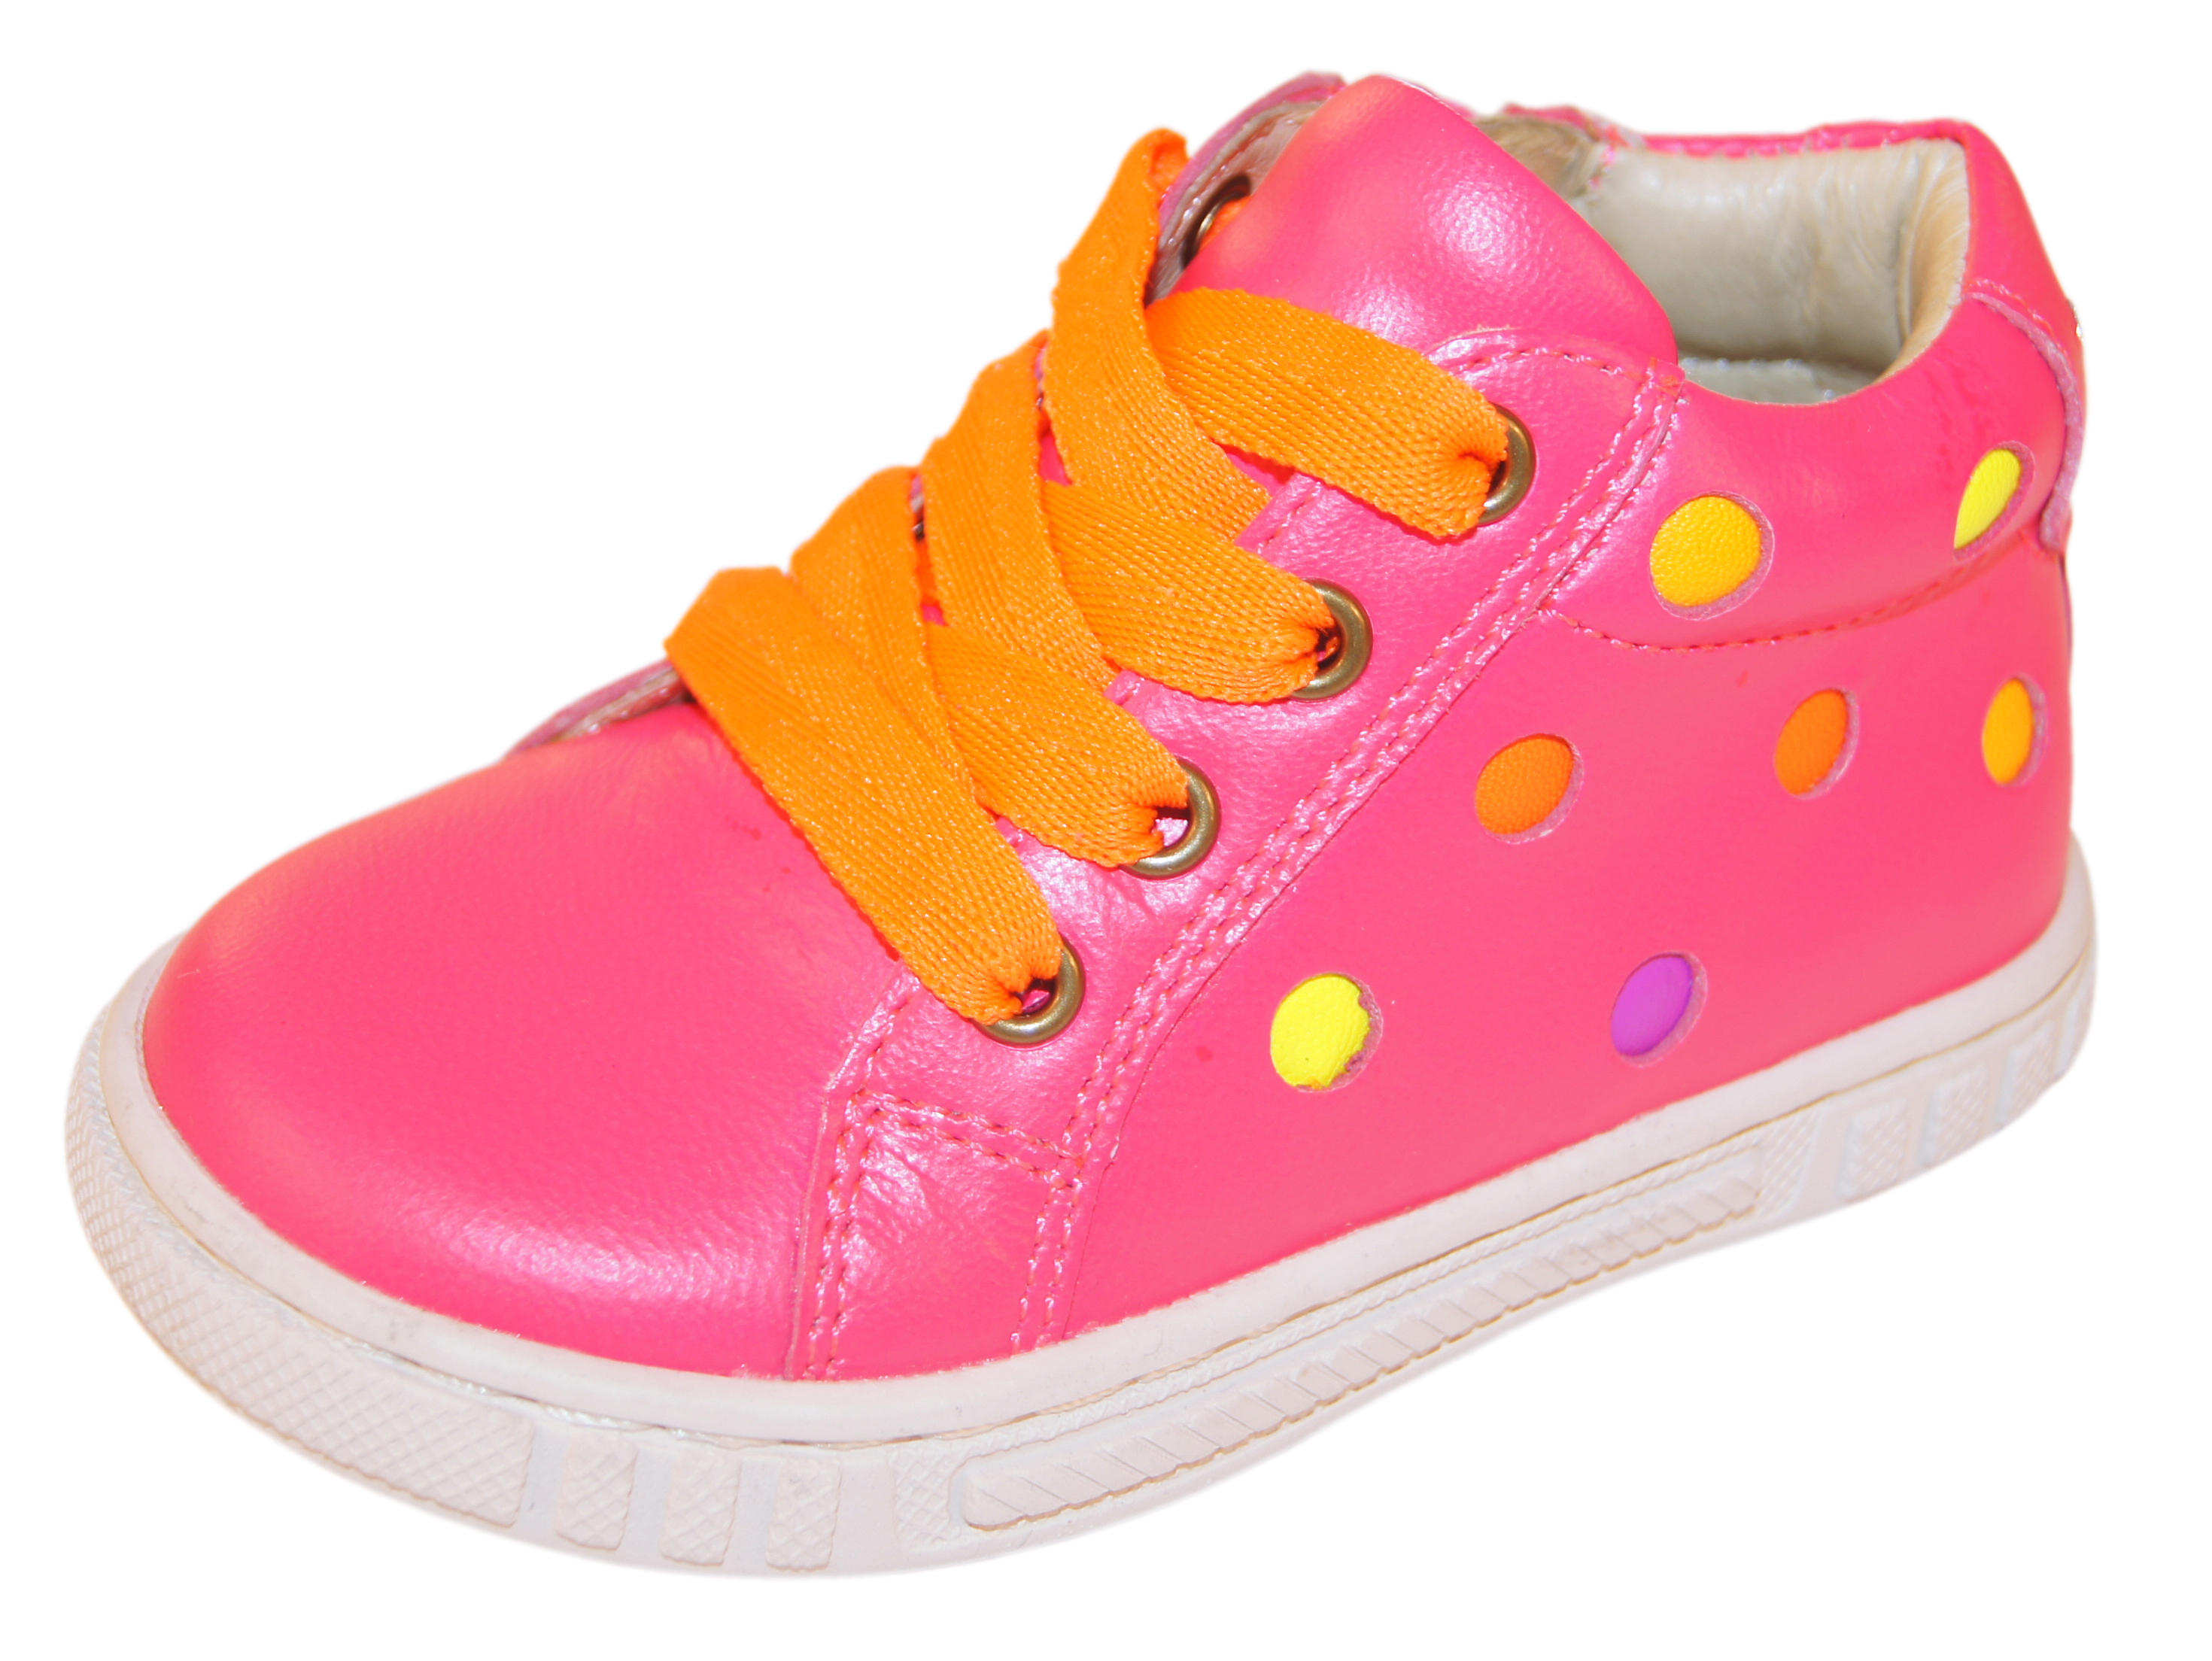 8d637a34314a Sneakers i neon pink m. orange